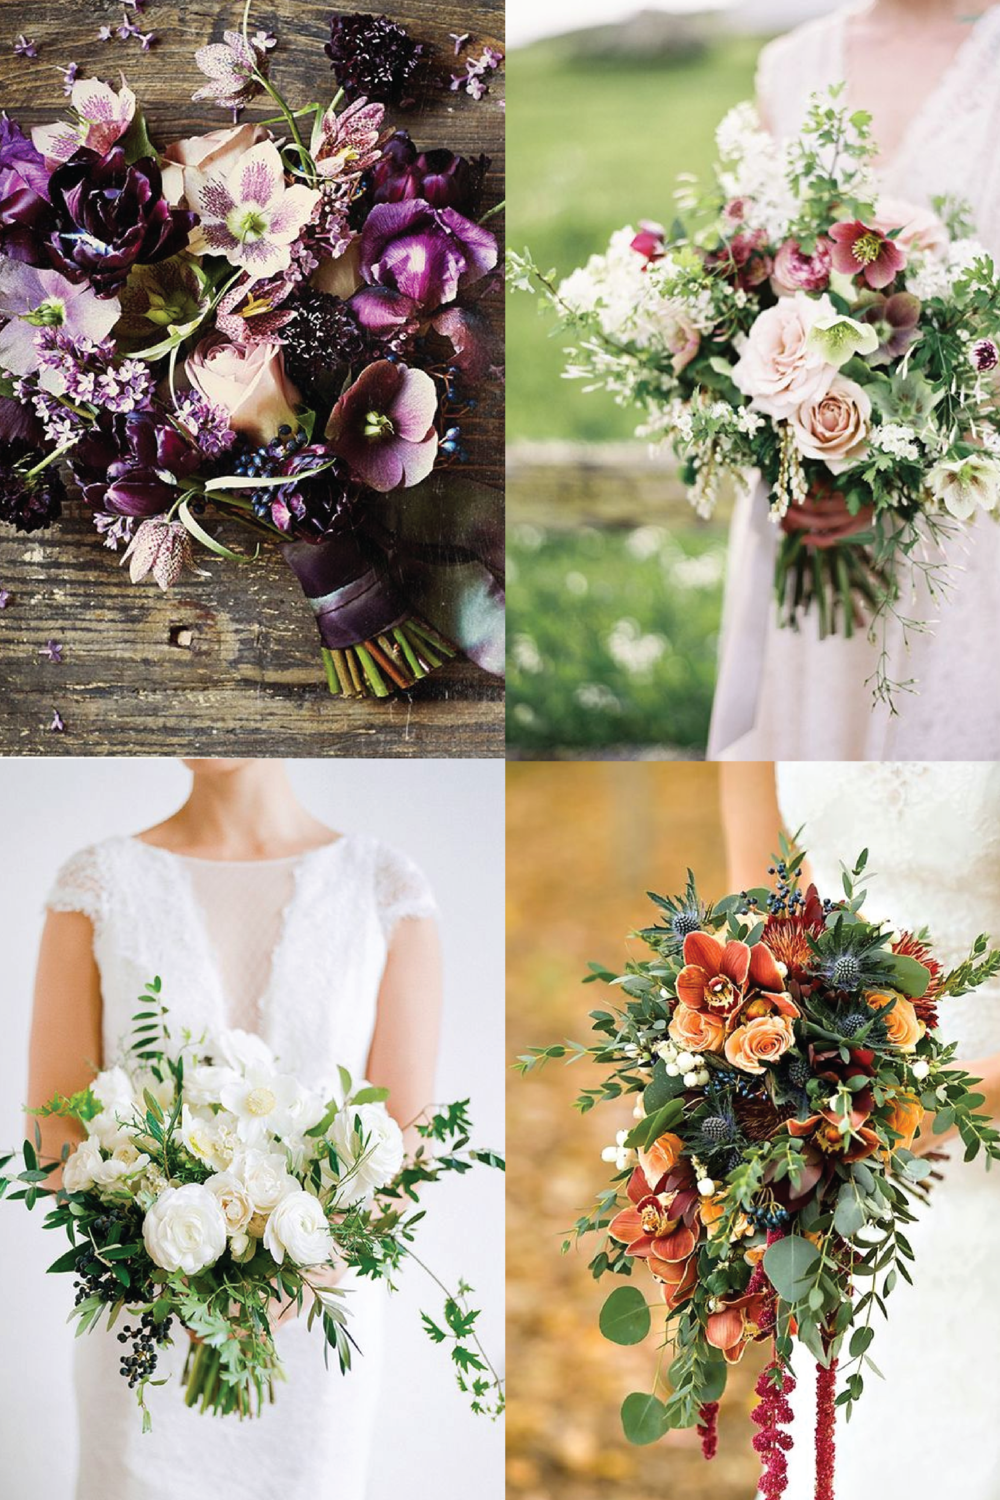 From clockwise, from top left:   flowers by  Sullivan Owen ; flowers by  Fleurs by Fallon Shea  and photo by  Jen Huang ; flowers by  La Fleuriste  and photo by  Christina McNeill ; flowers by  Prestige Floral  and photo by  Modern Jane Design .